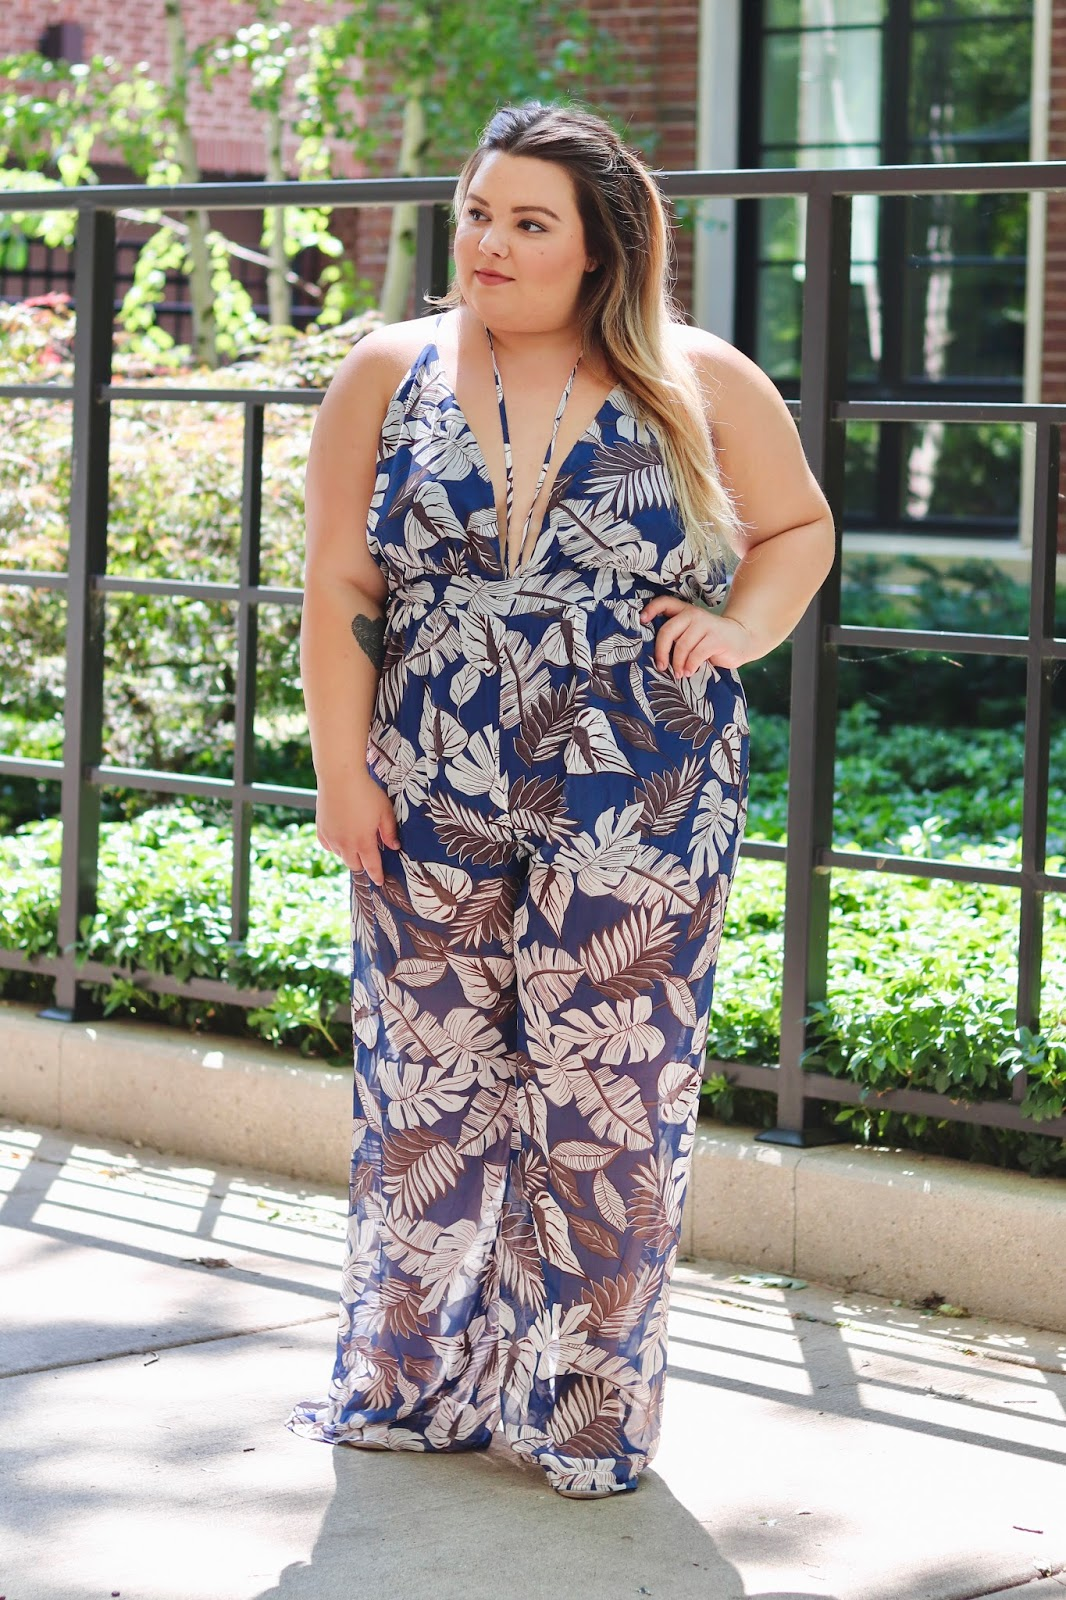 Bell Bottom Floral Jumpsuit Natalie In The City A Chicago Plus